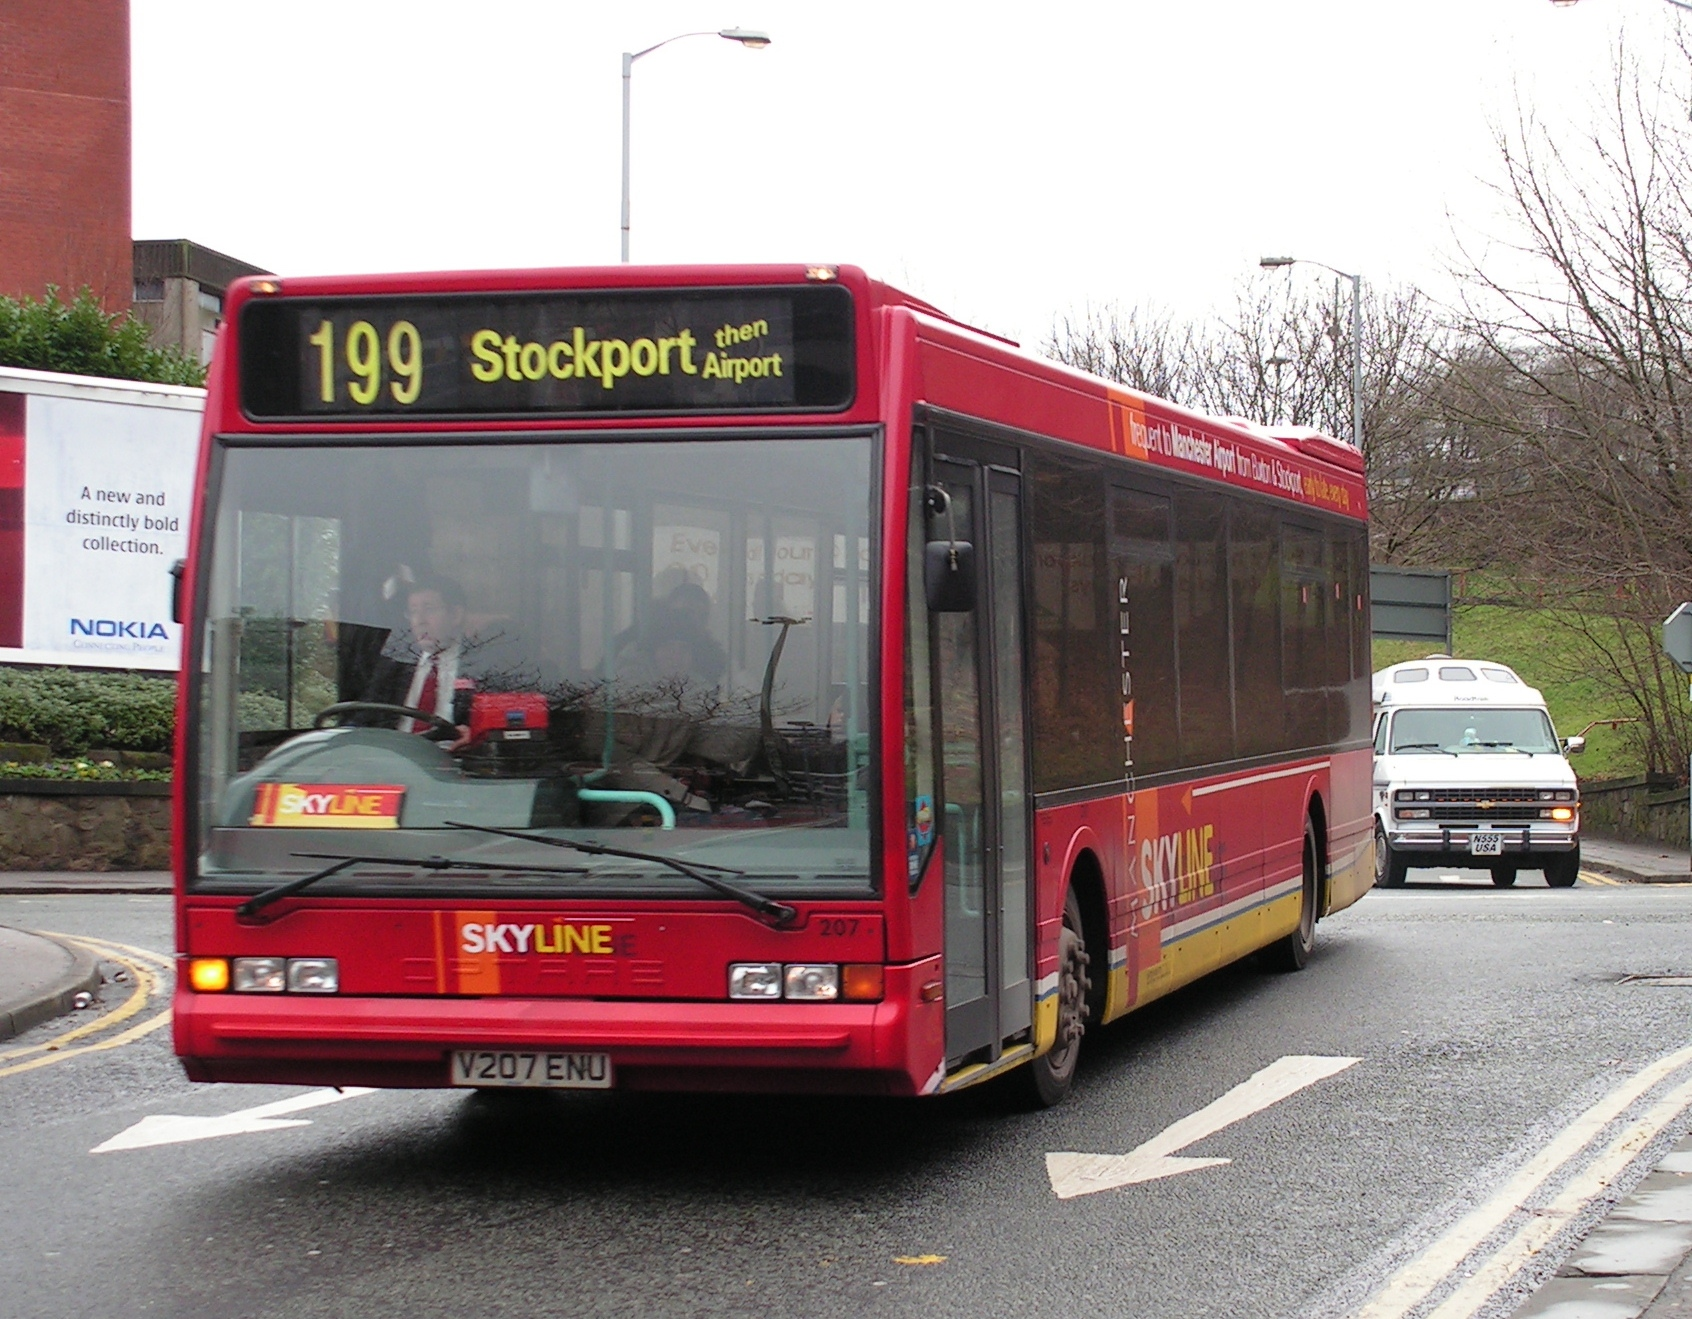 #AYearOfBuses 199: Skyline Buxton – Manchester Airport